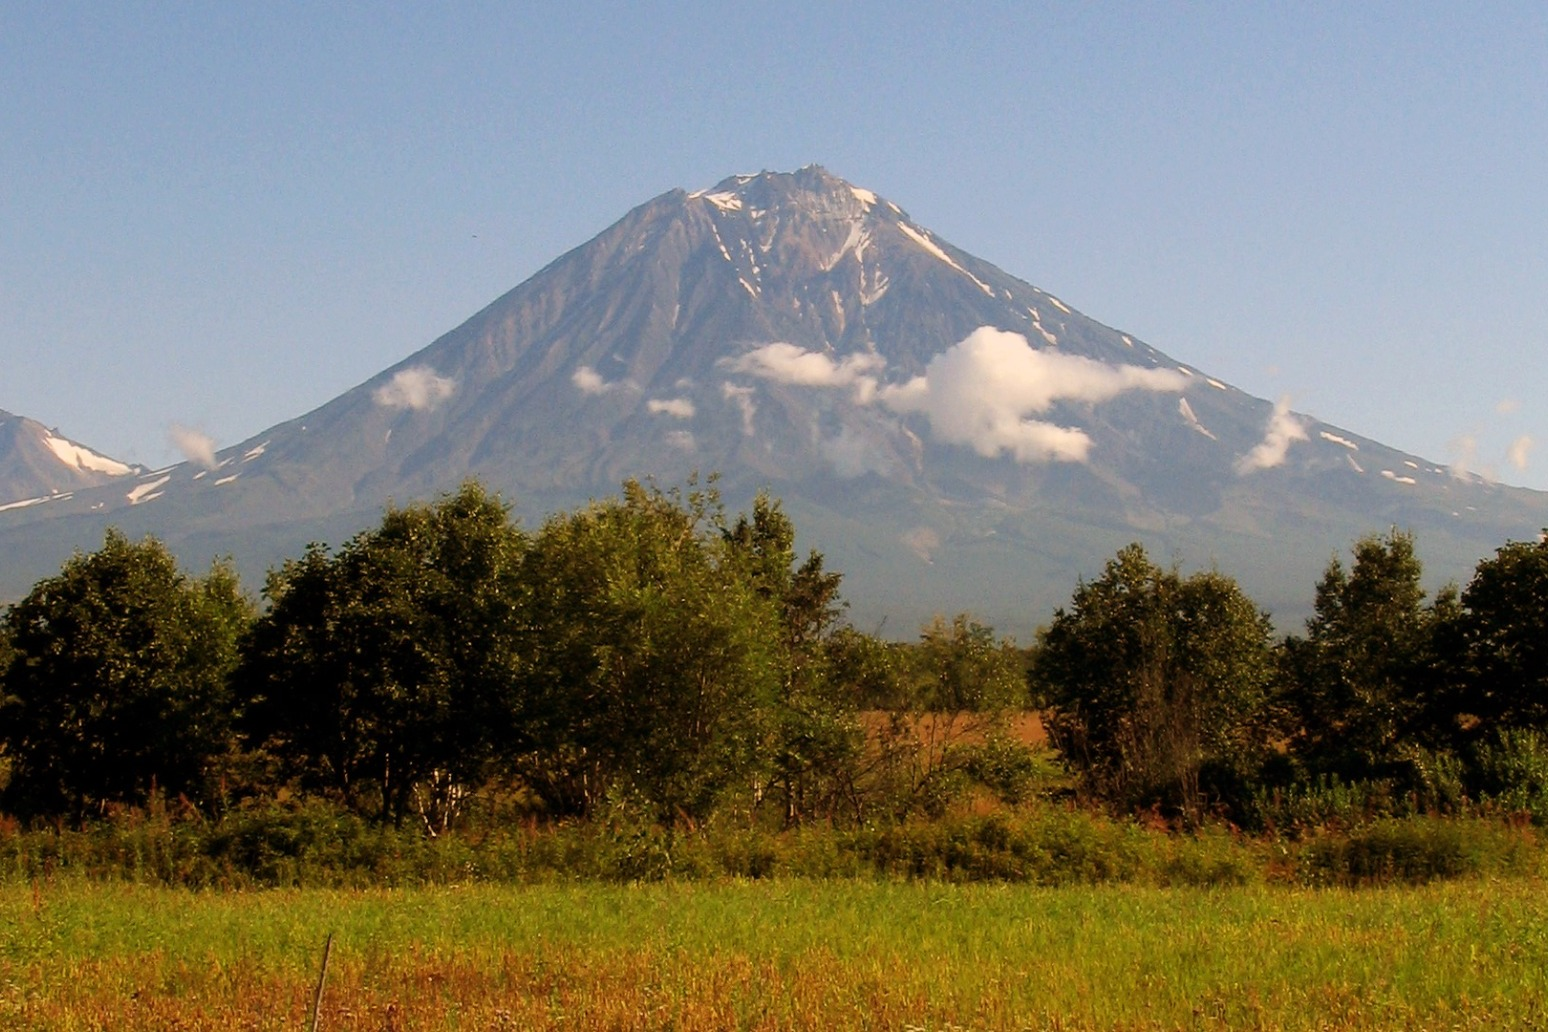 Volcanoes were a safety valve for Earth's long-term climate